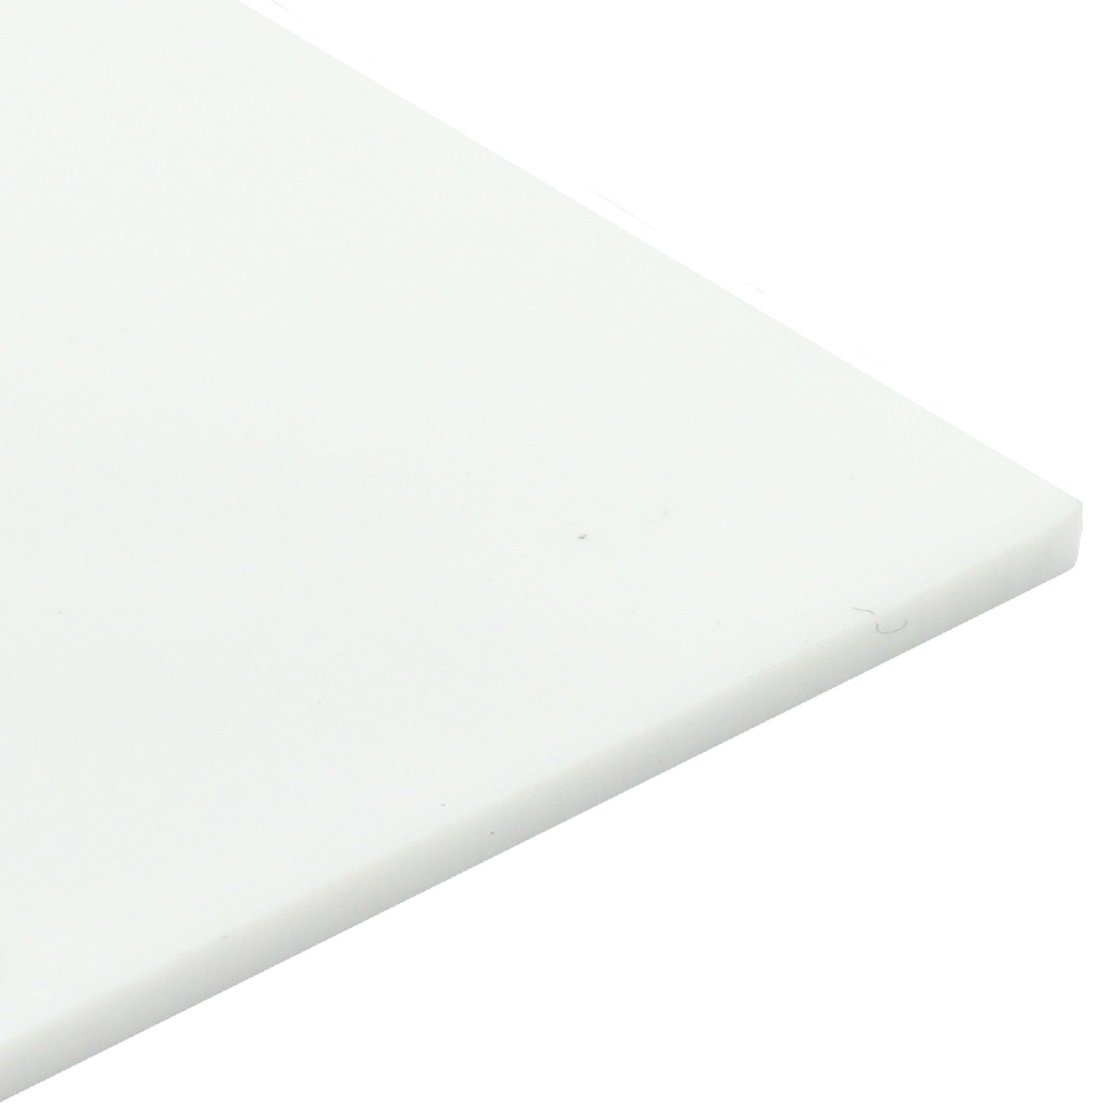 5mm Perspex White Gloss Acrylic Plastic Sheet 16 SIZES TO CHOOSE (100mm x 100mm) Sign Materials Direct